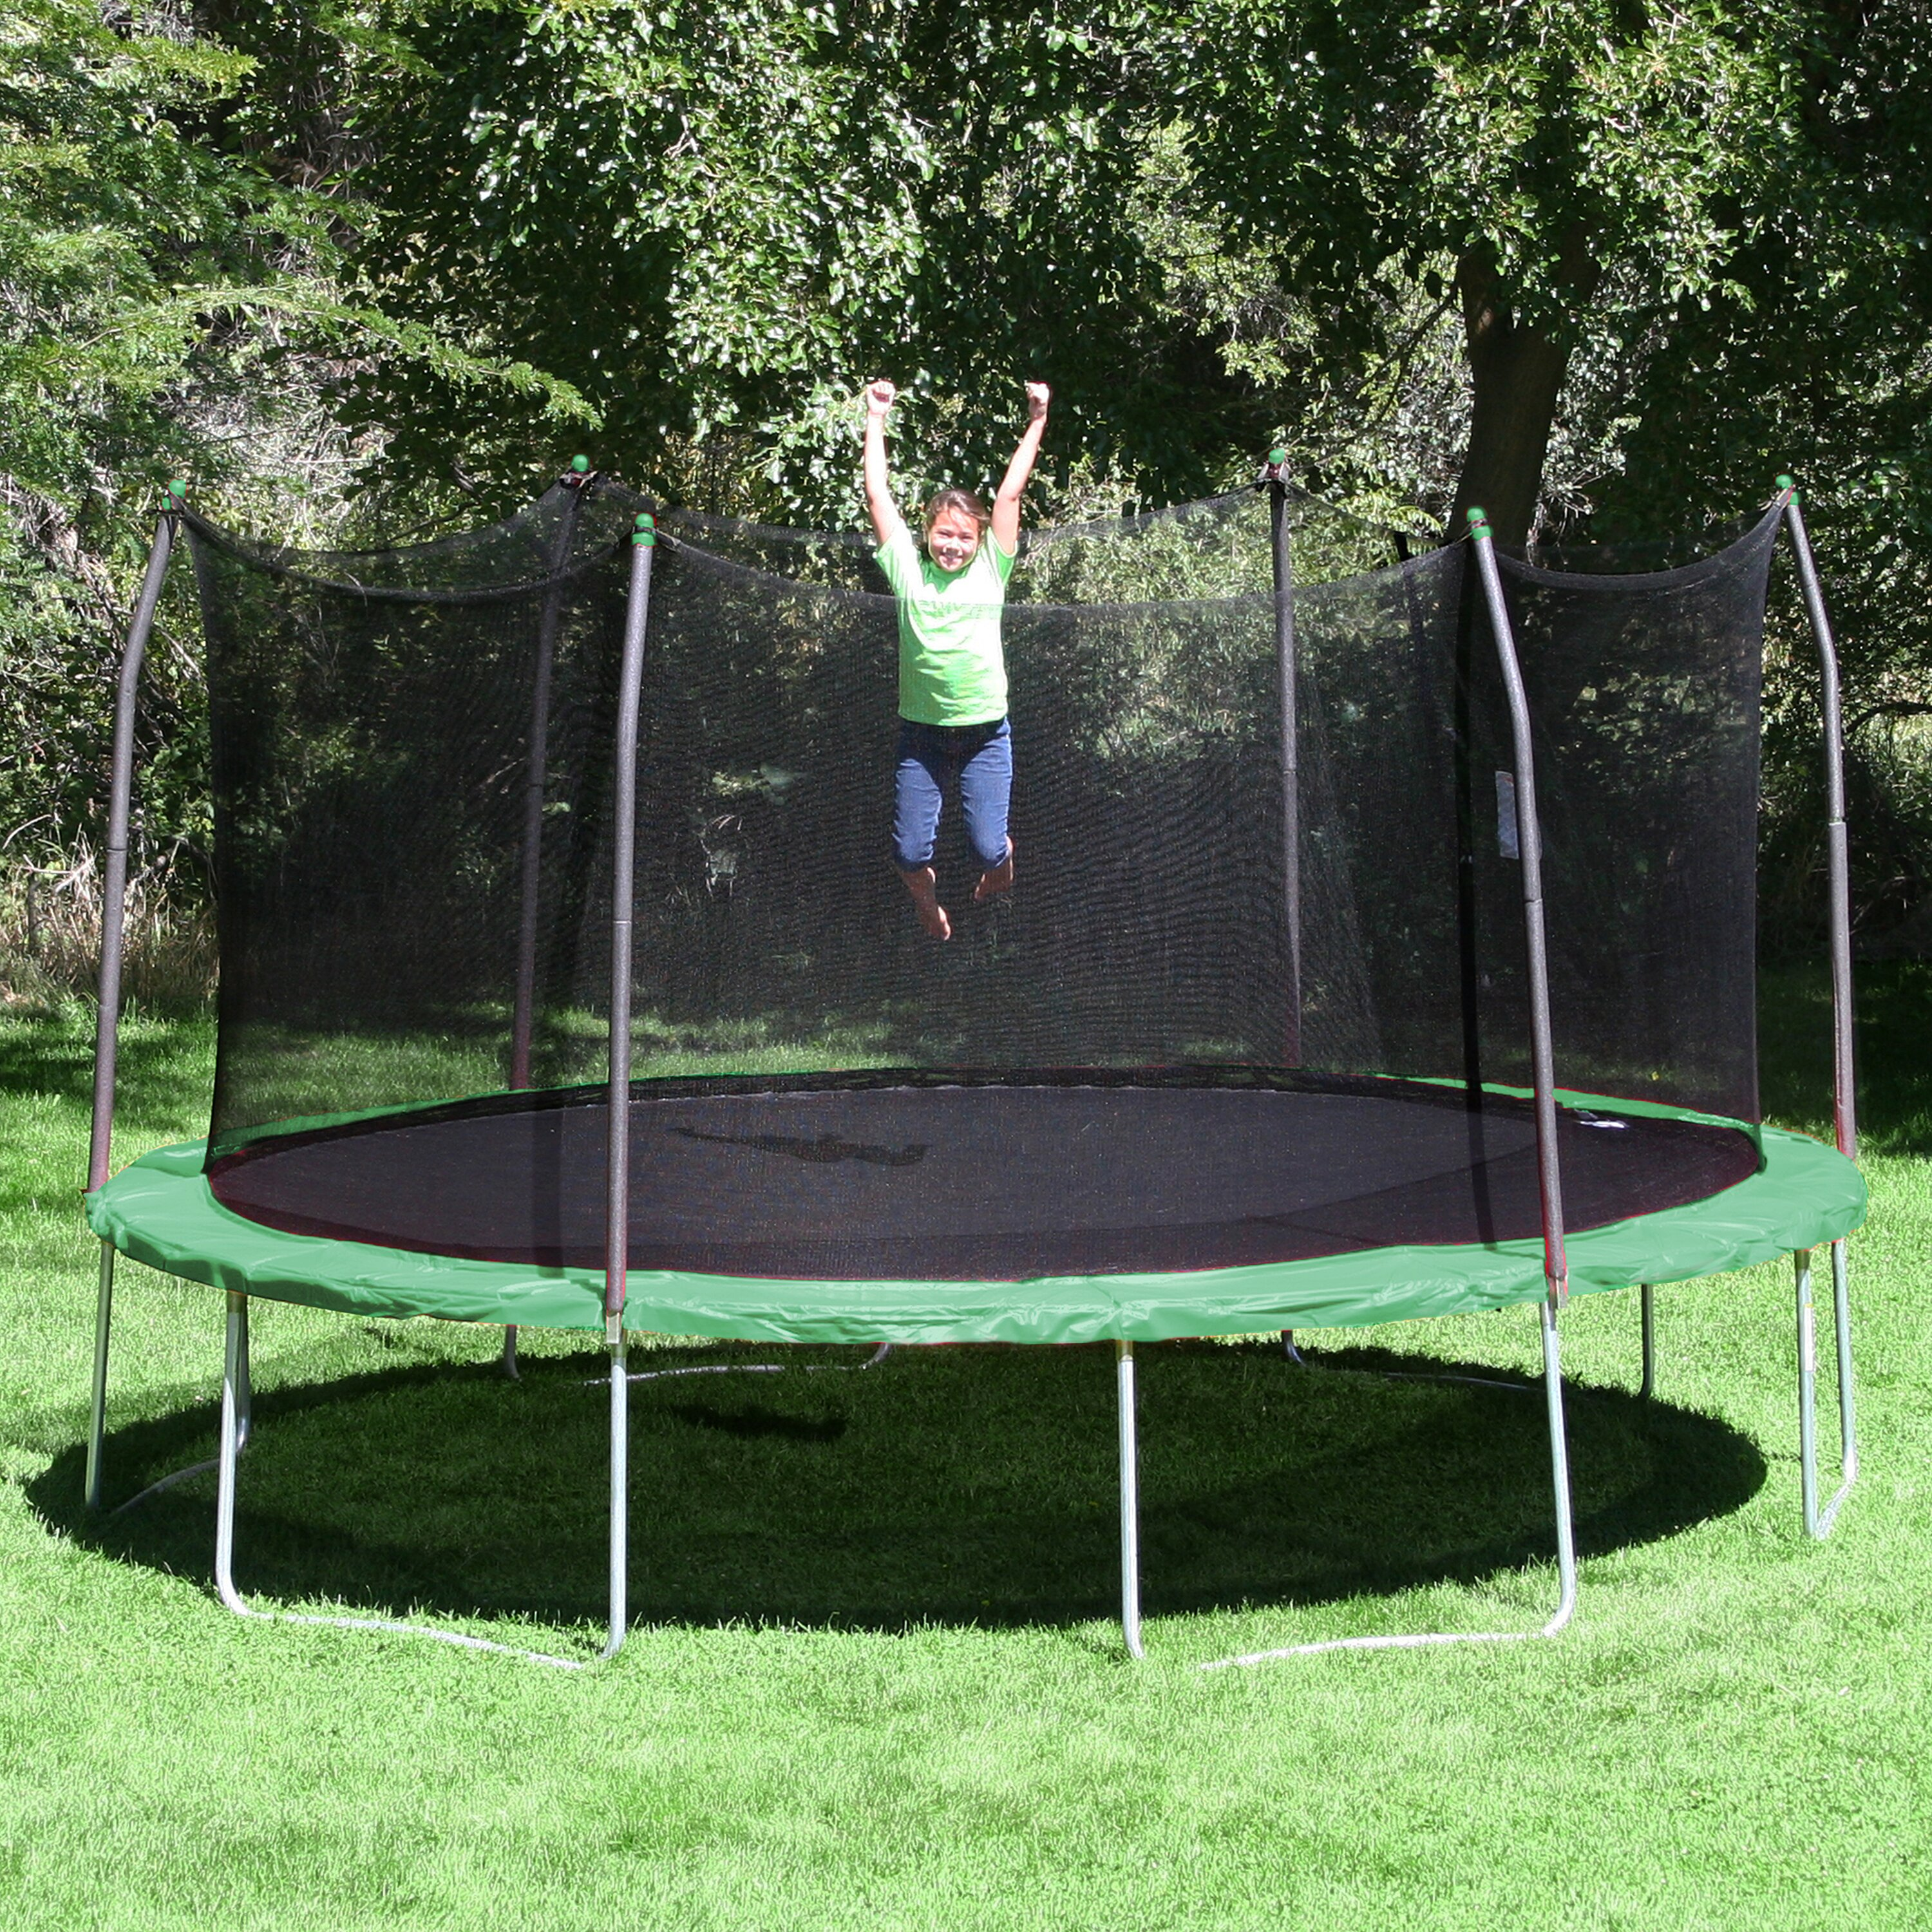 Safest Top Rated Trampolines: Skywalker 17' X 15' Oval Trampoline With Safety Enclosure